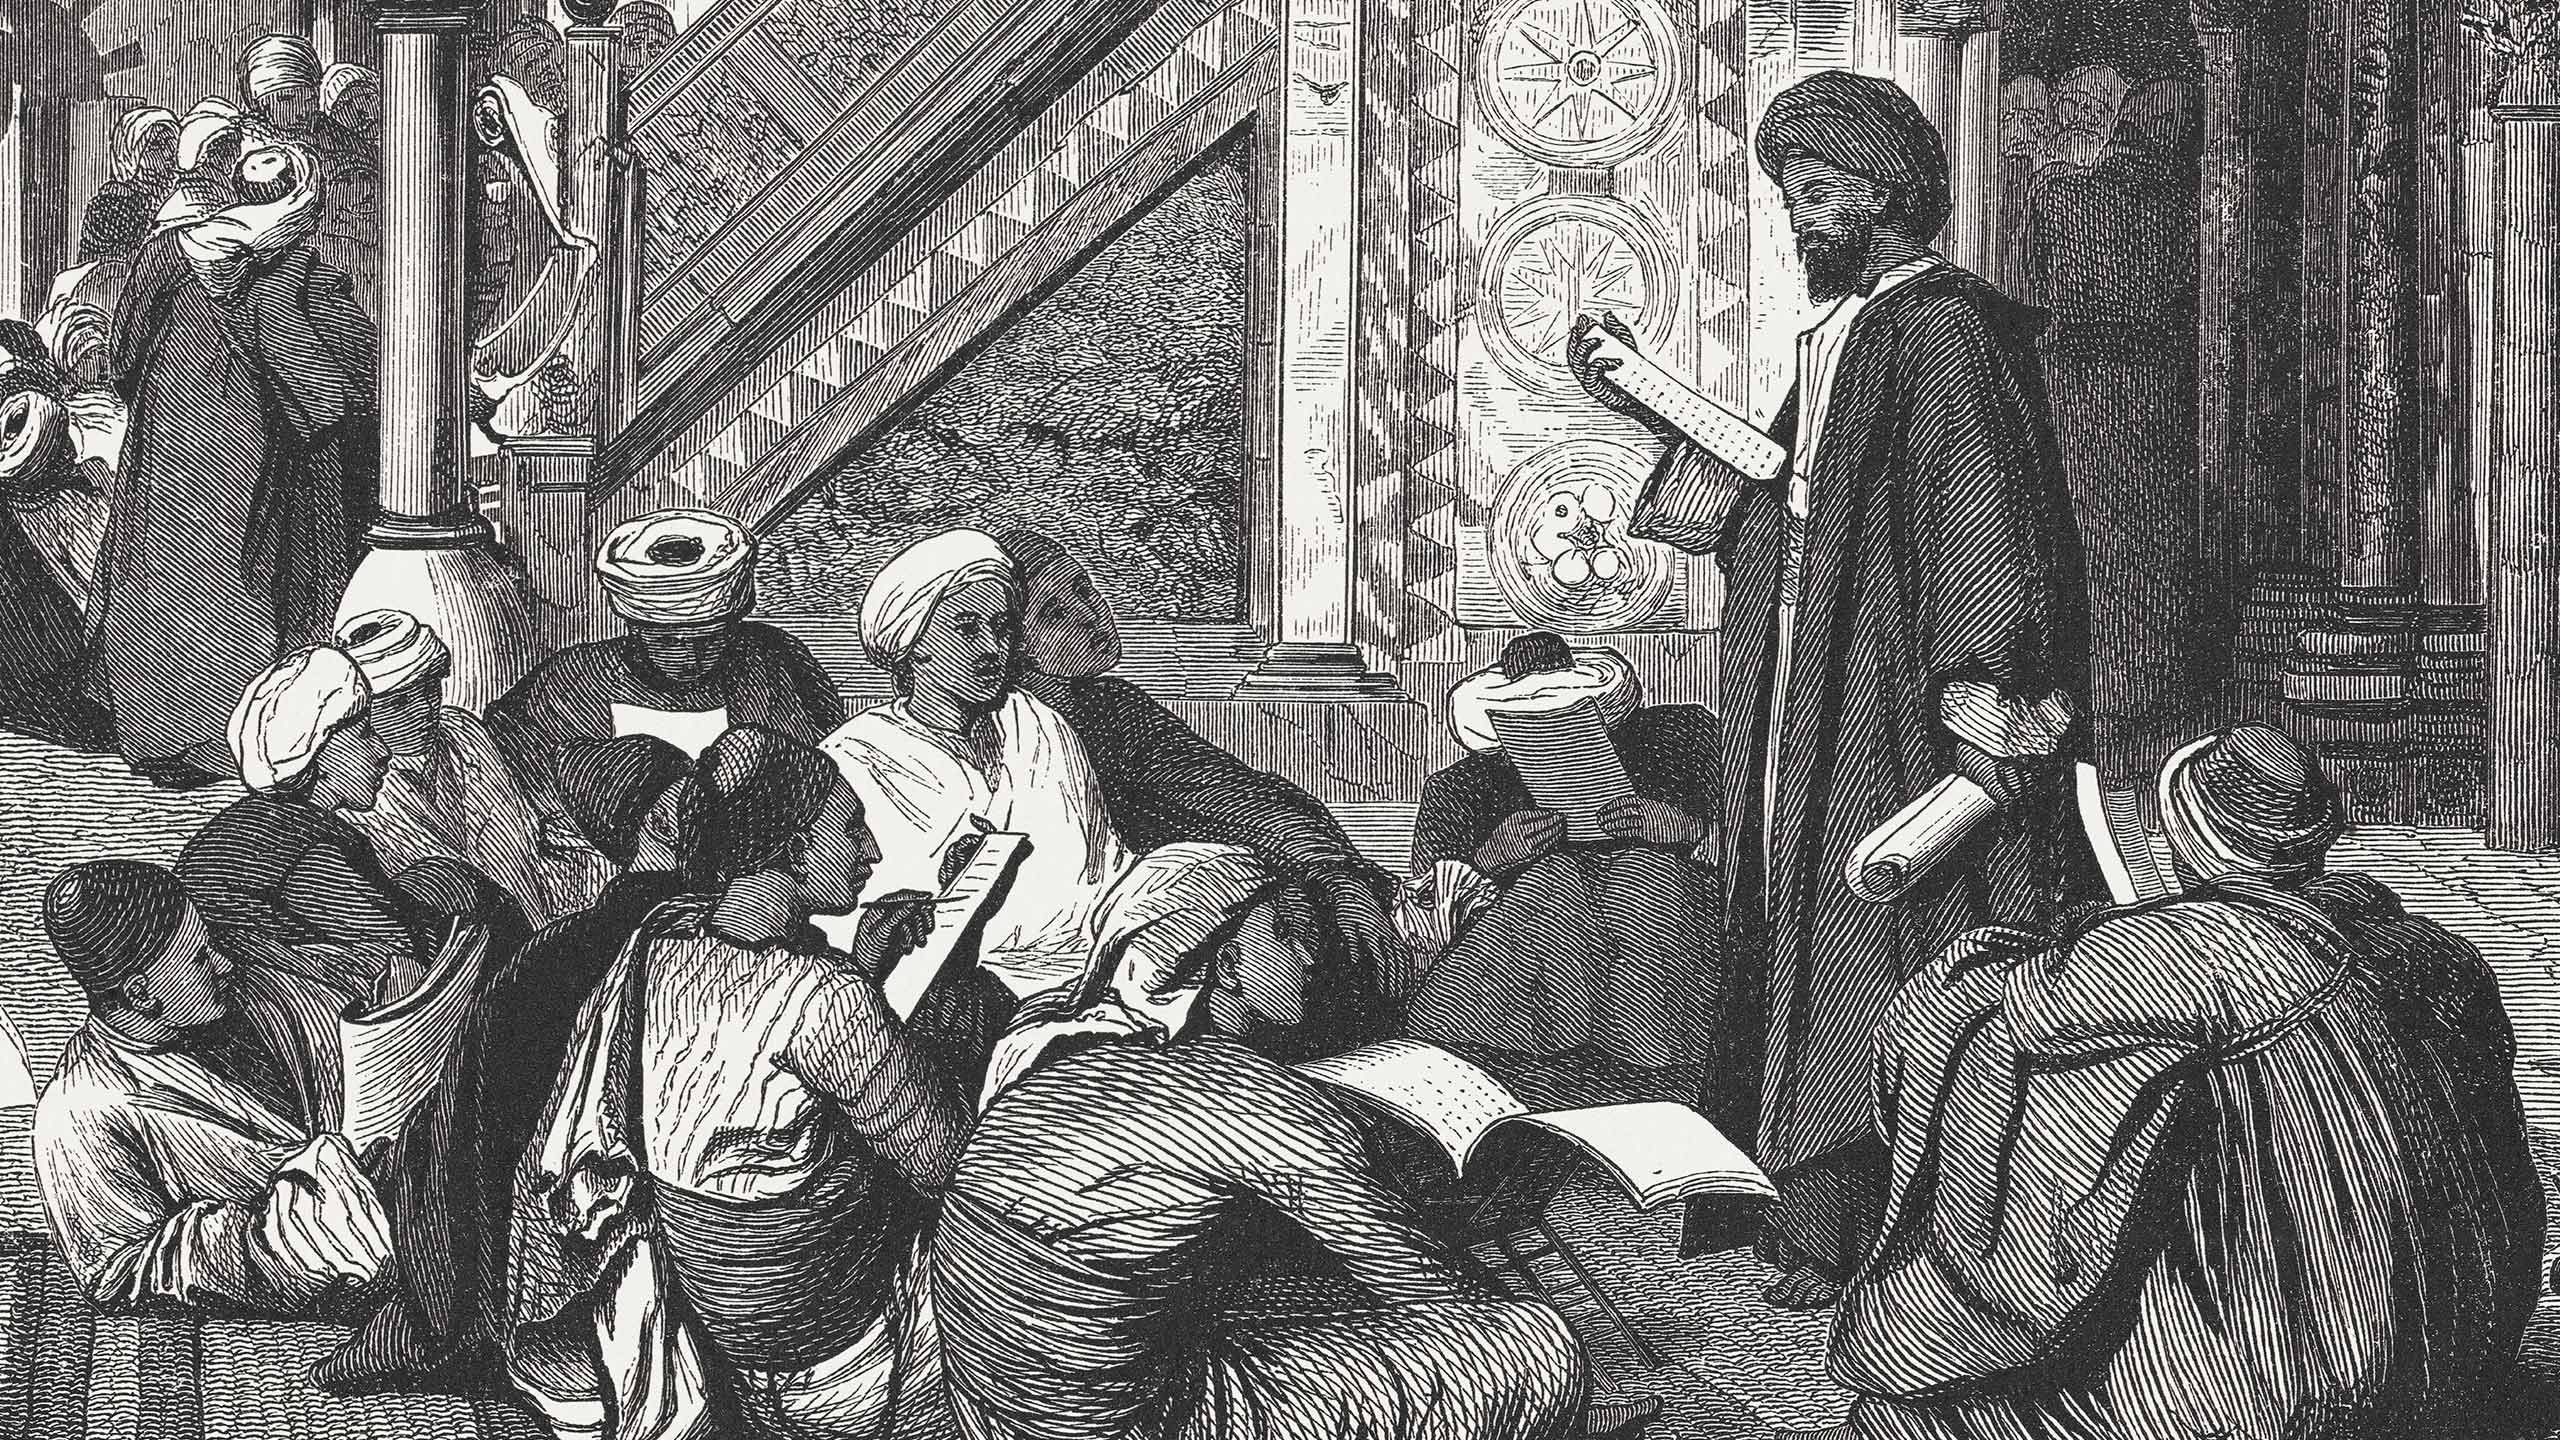 Mawālī: How Freed Slaves and Non-Arabs Contributed to Islamic Scholarship